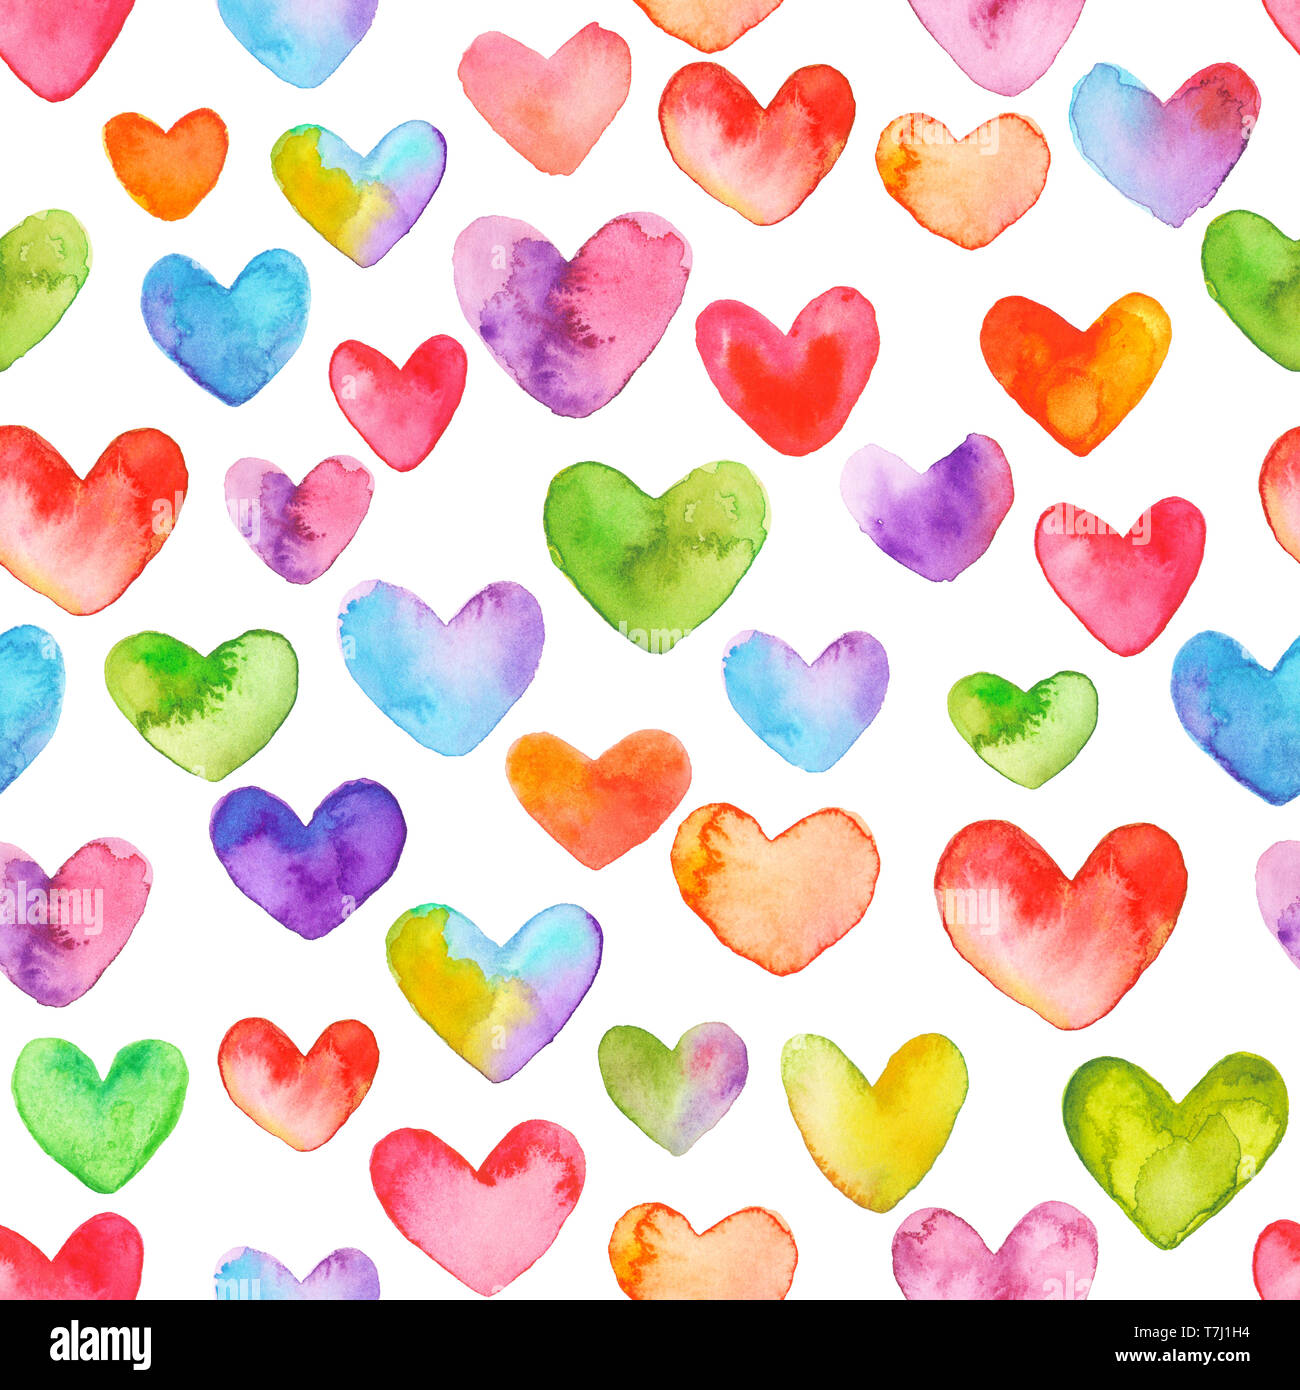 Watercolor Heart Pattern Seamless Hearts Background Day